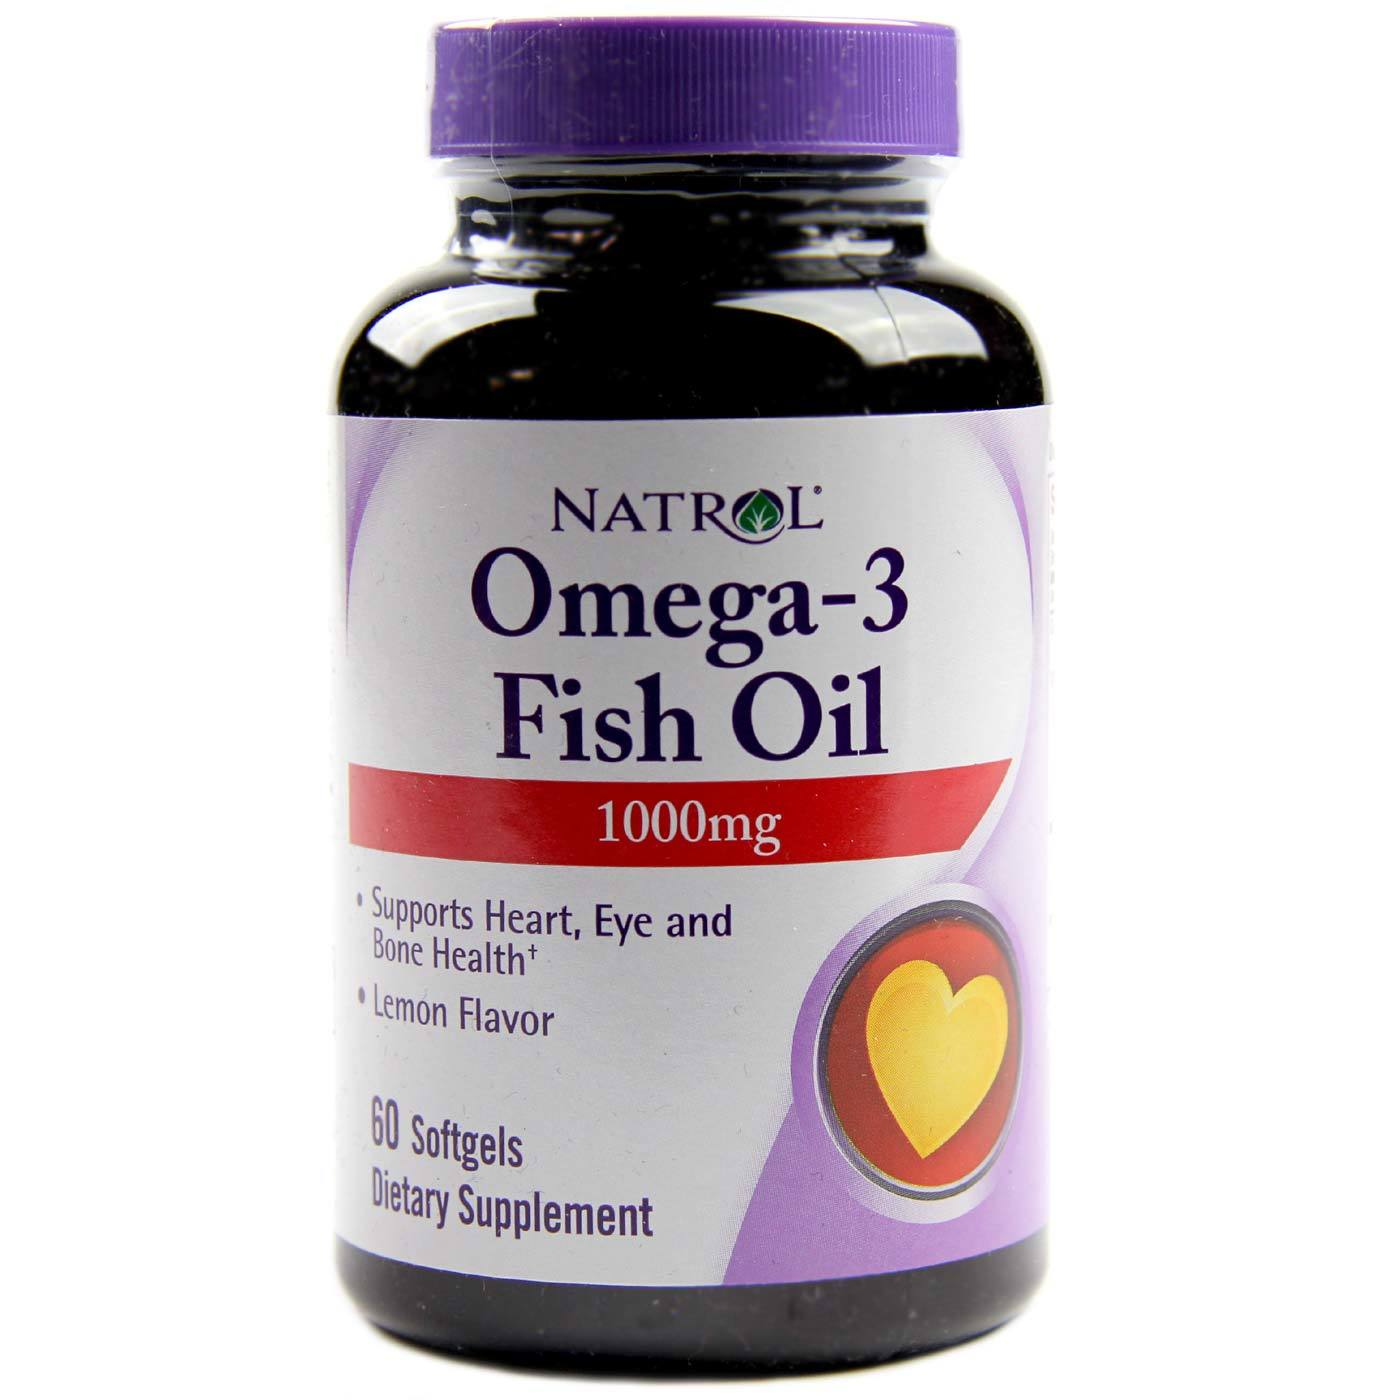 Natrol omega 3 fish oil lemon 1000 mg 60 softgels for Fish oil 1000 mg